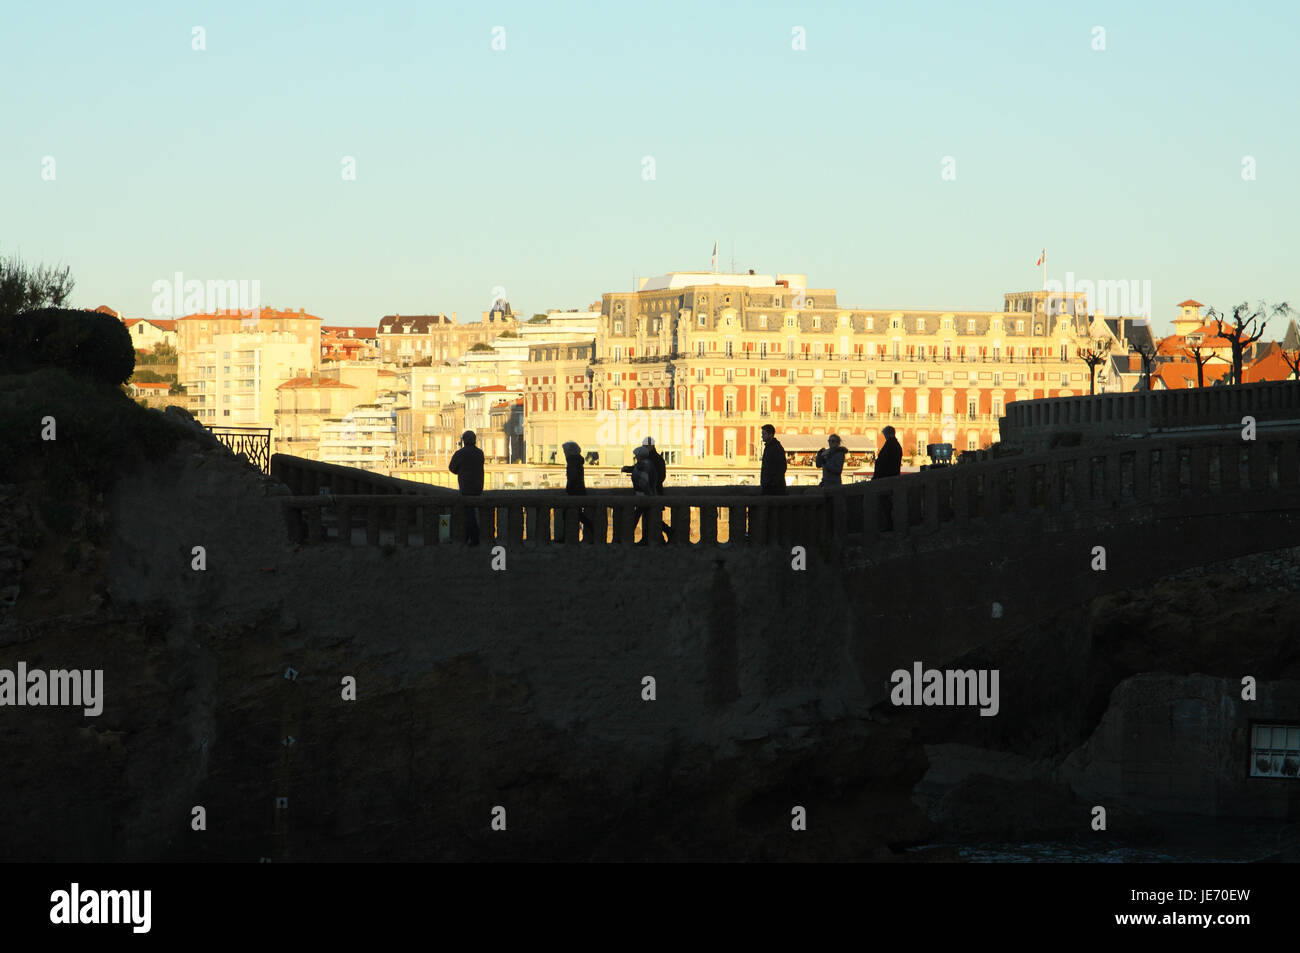 Hotel Du Palais, and silhouettes of people crossing the Rocher du Basta path, Biarritz, France - Stock Image